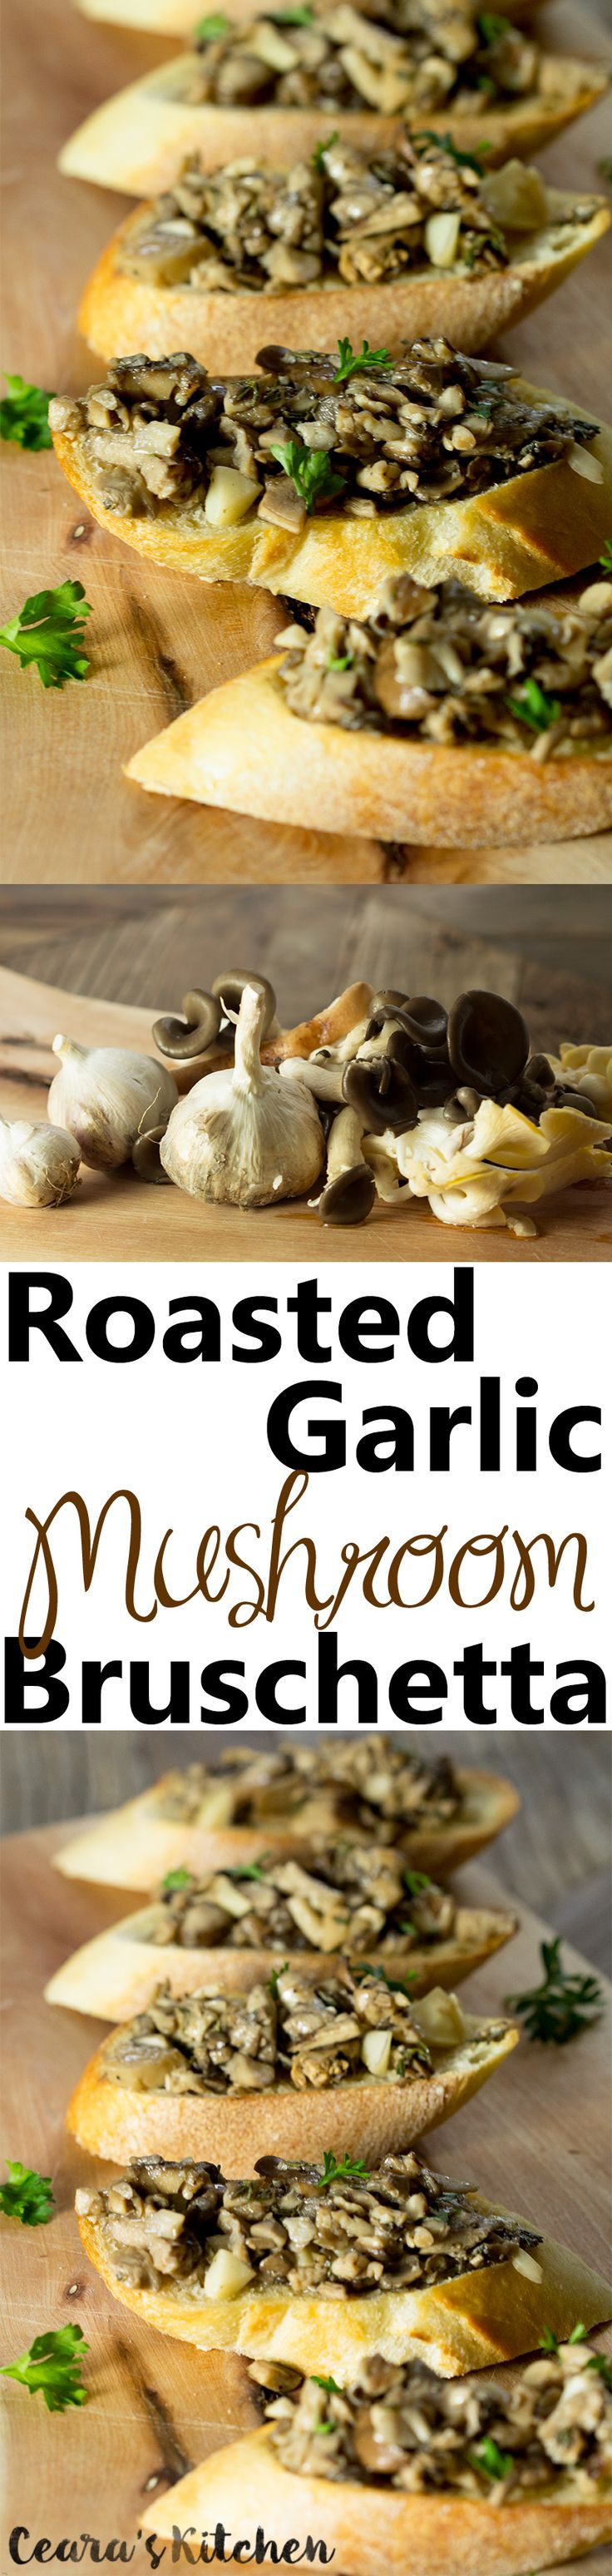 @The Mushroom Channel #MightyMushrooms Roasted Garlic and Mushroom Bruschetta